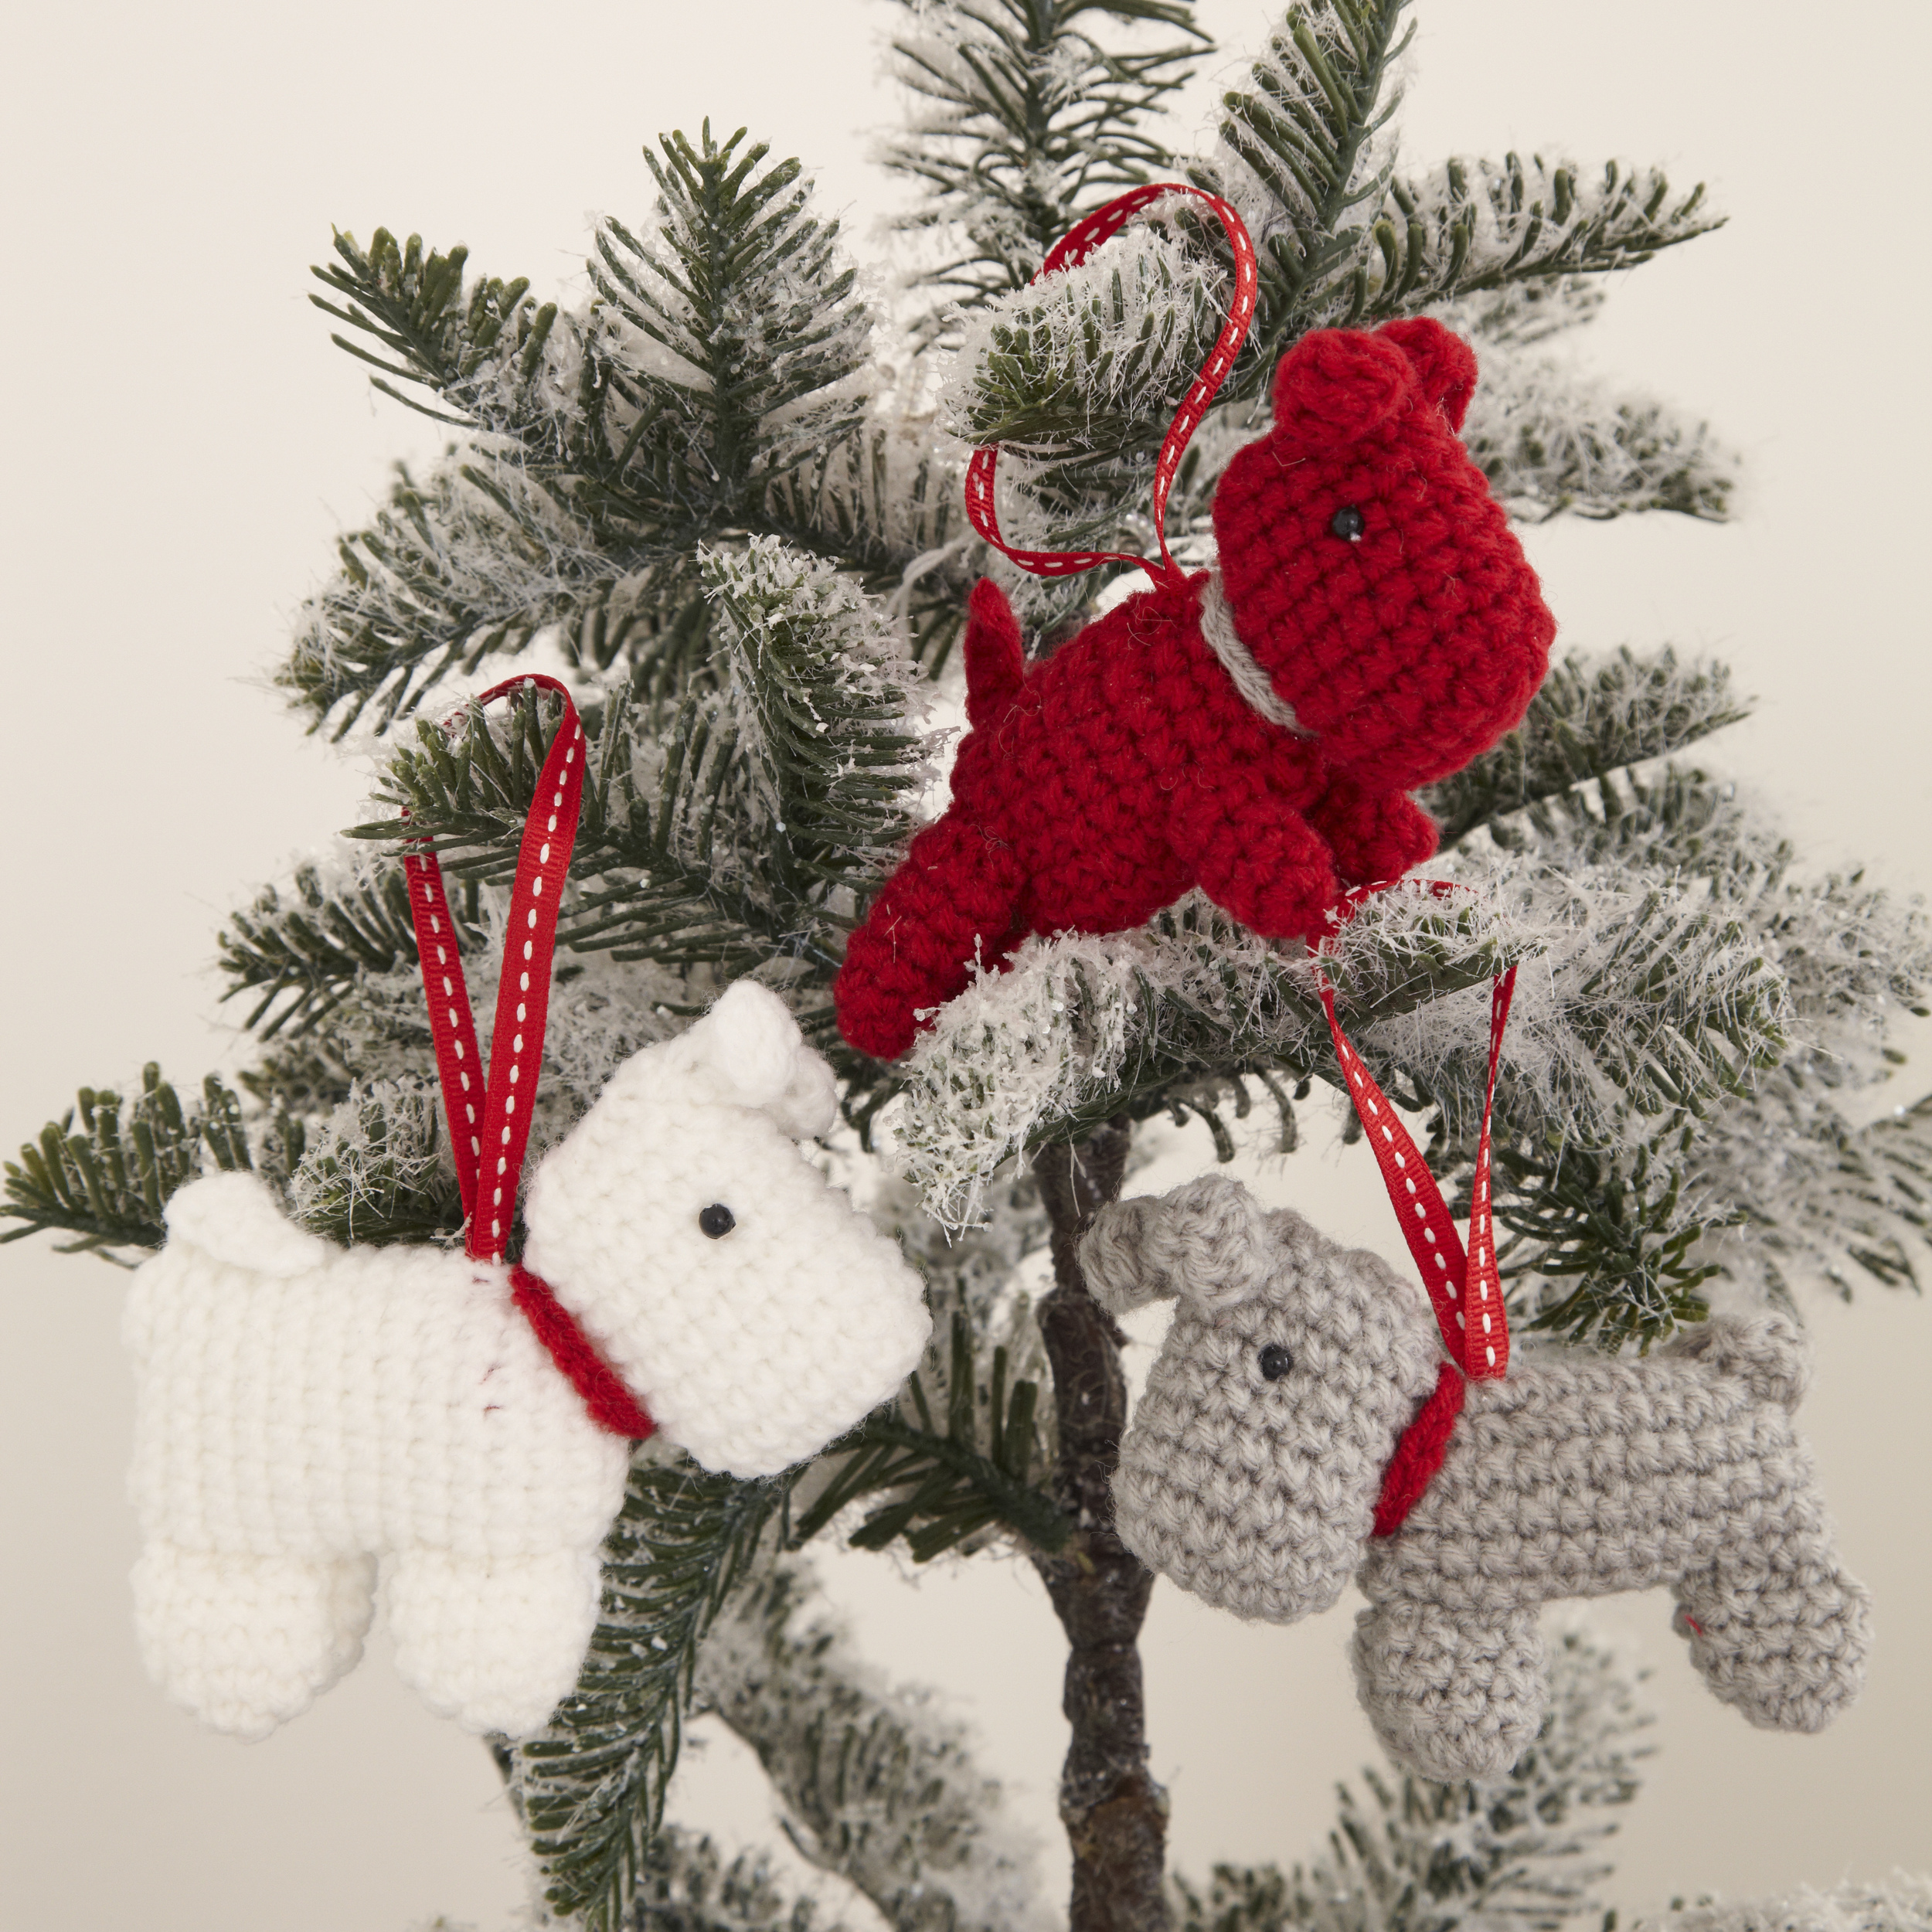 Knitted Decorations: Knitted Christmas Decorations Are A Thing Now